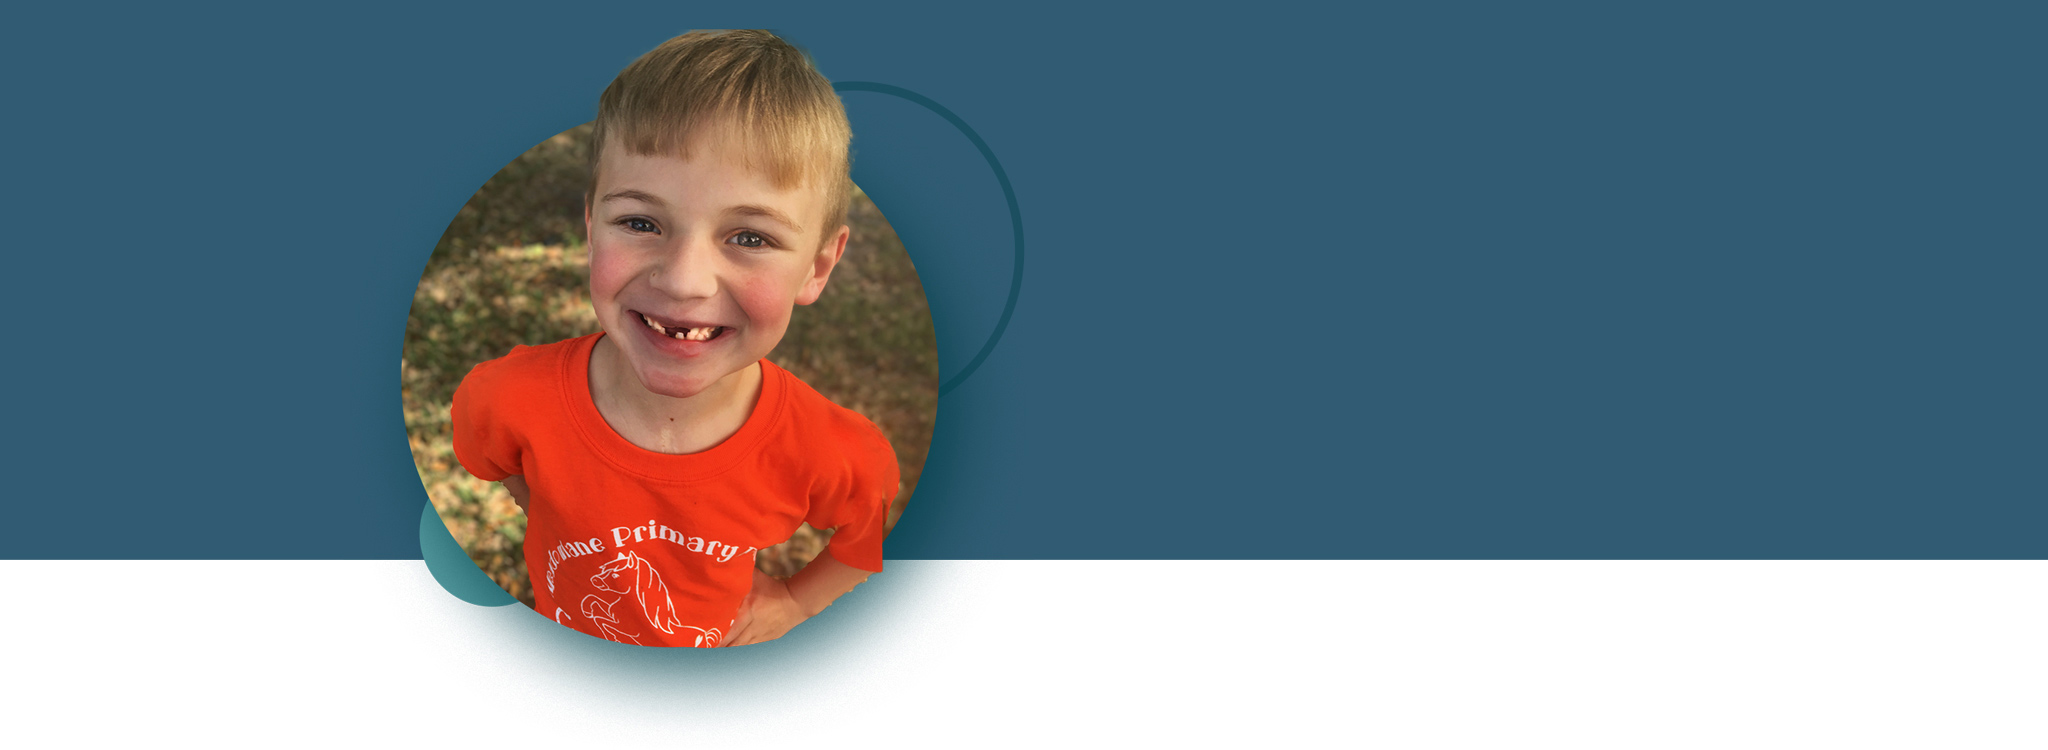 Jackson - We Choose Heart Experts for More Smiles.